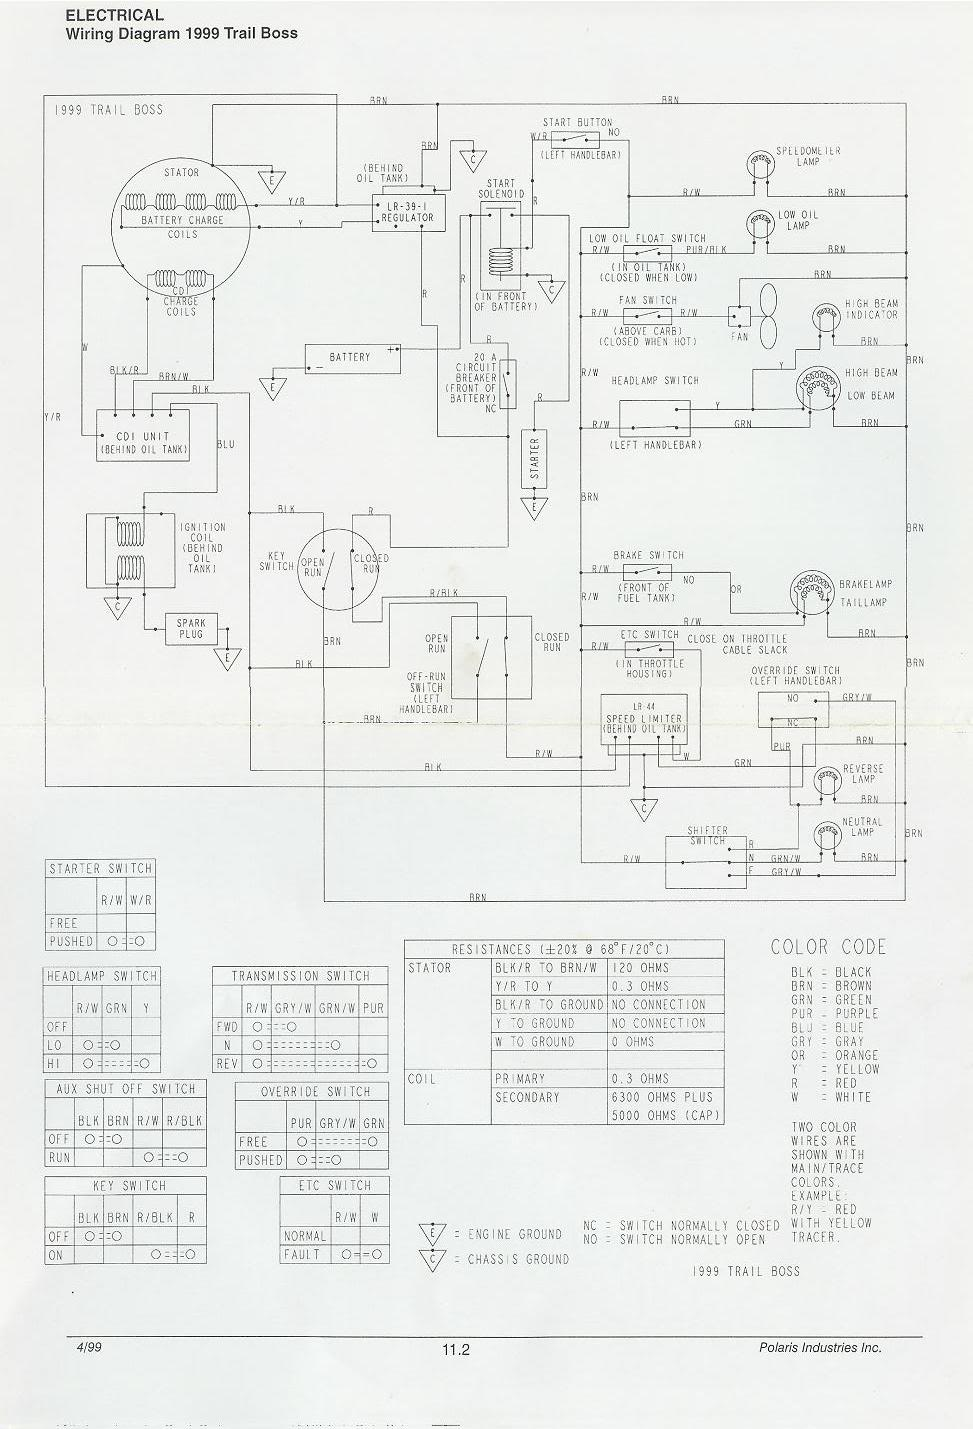 Polaris Electrical Diagram. Parts. Wiring Diagram Images